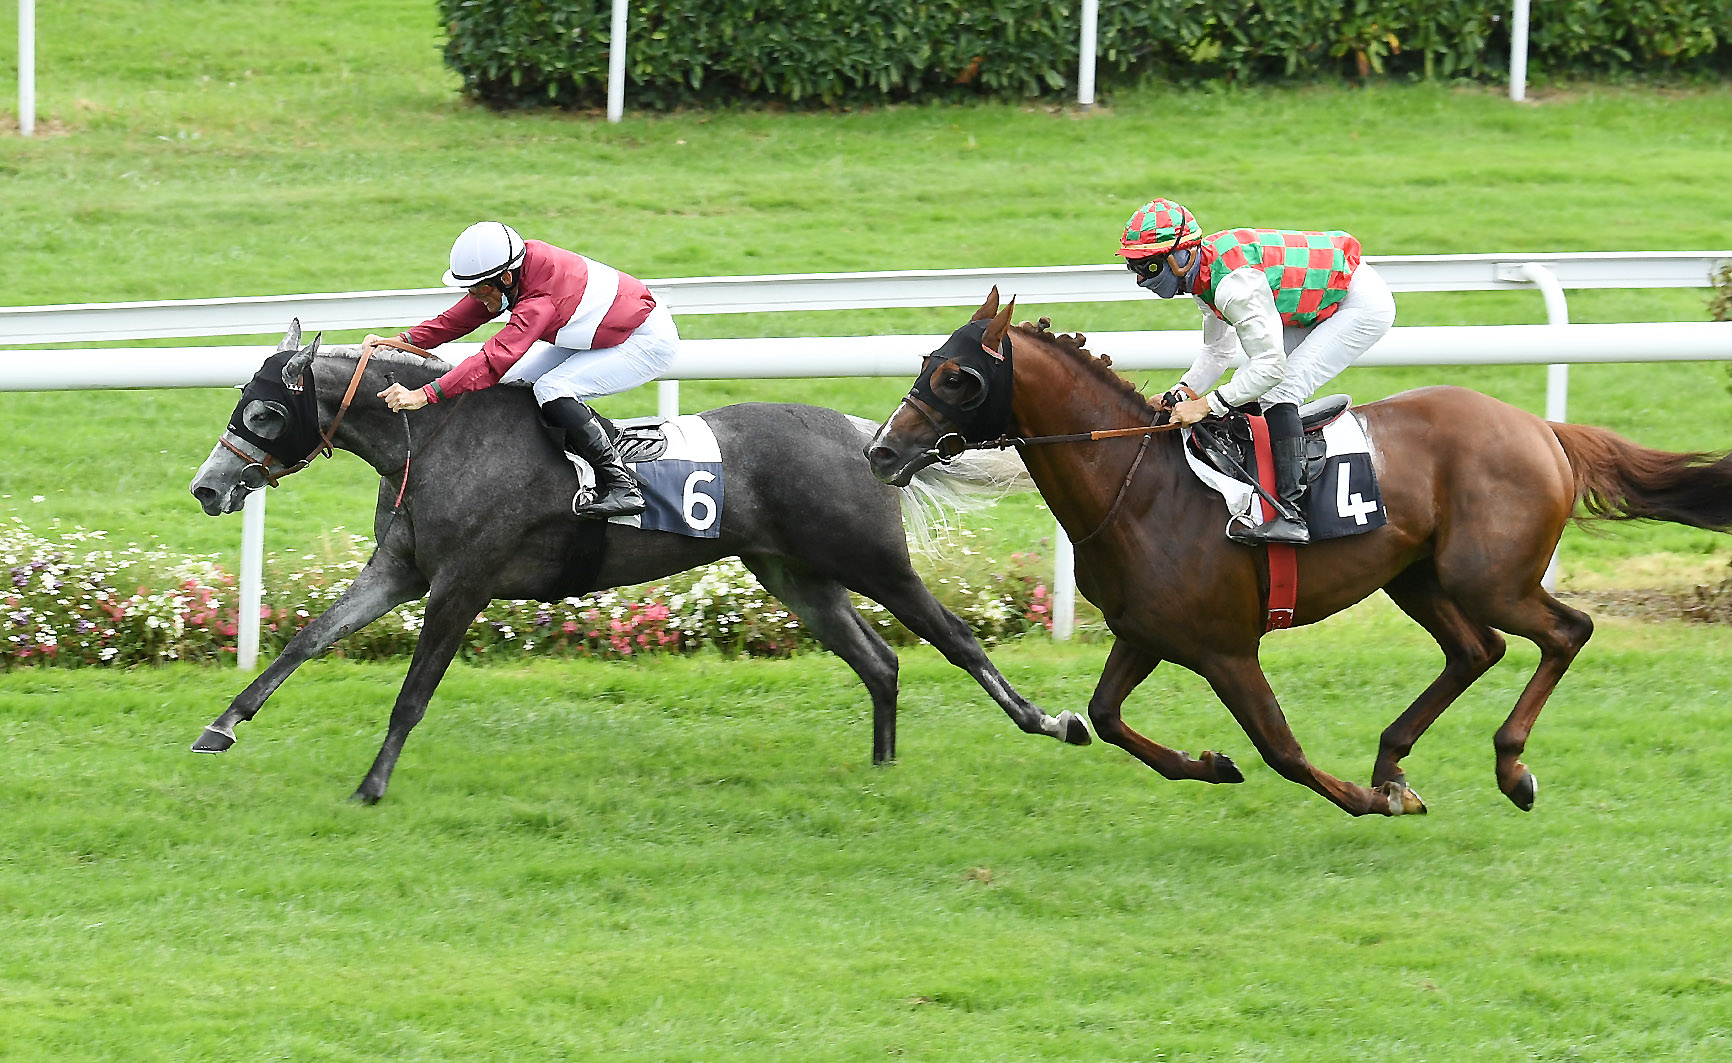 AFAC FRENCH ARABIAN BREEDERS' CHALLENGE SPRINT: NATALMA AL MAURY: IT PAYS TO BE DARING